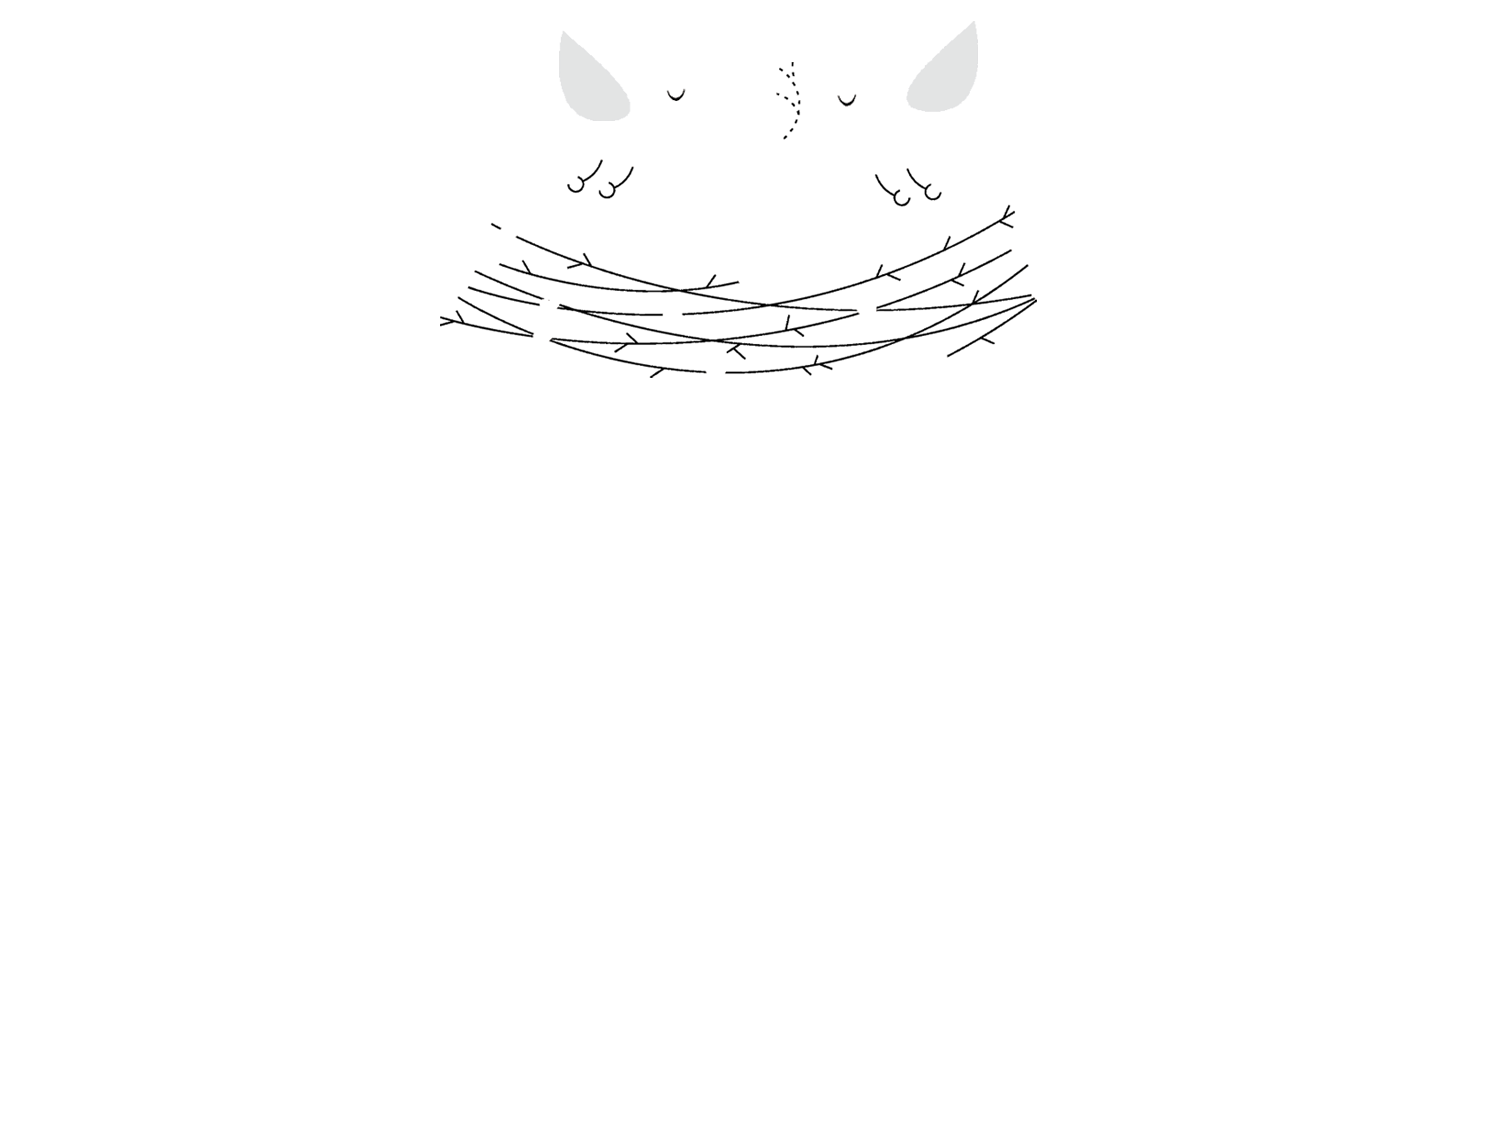 Please join us clipart black and white picture freeuse library Please Join Us To Celebrate Our Wedding - Illustration ... picture freeuse library